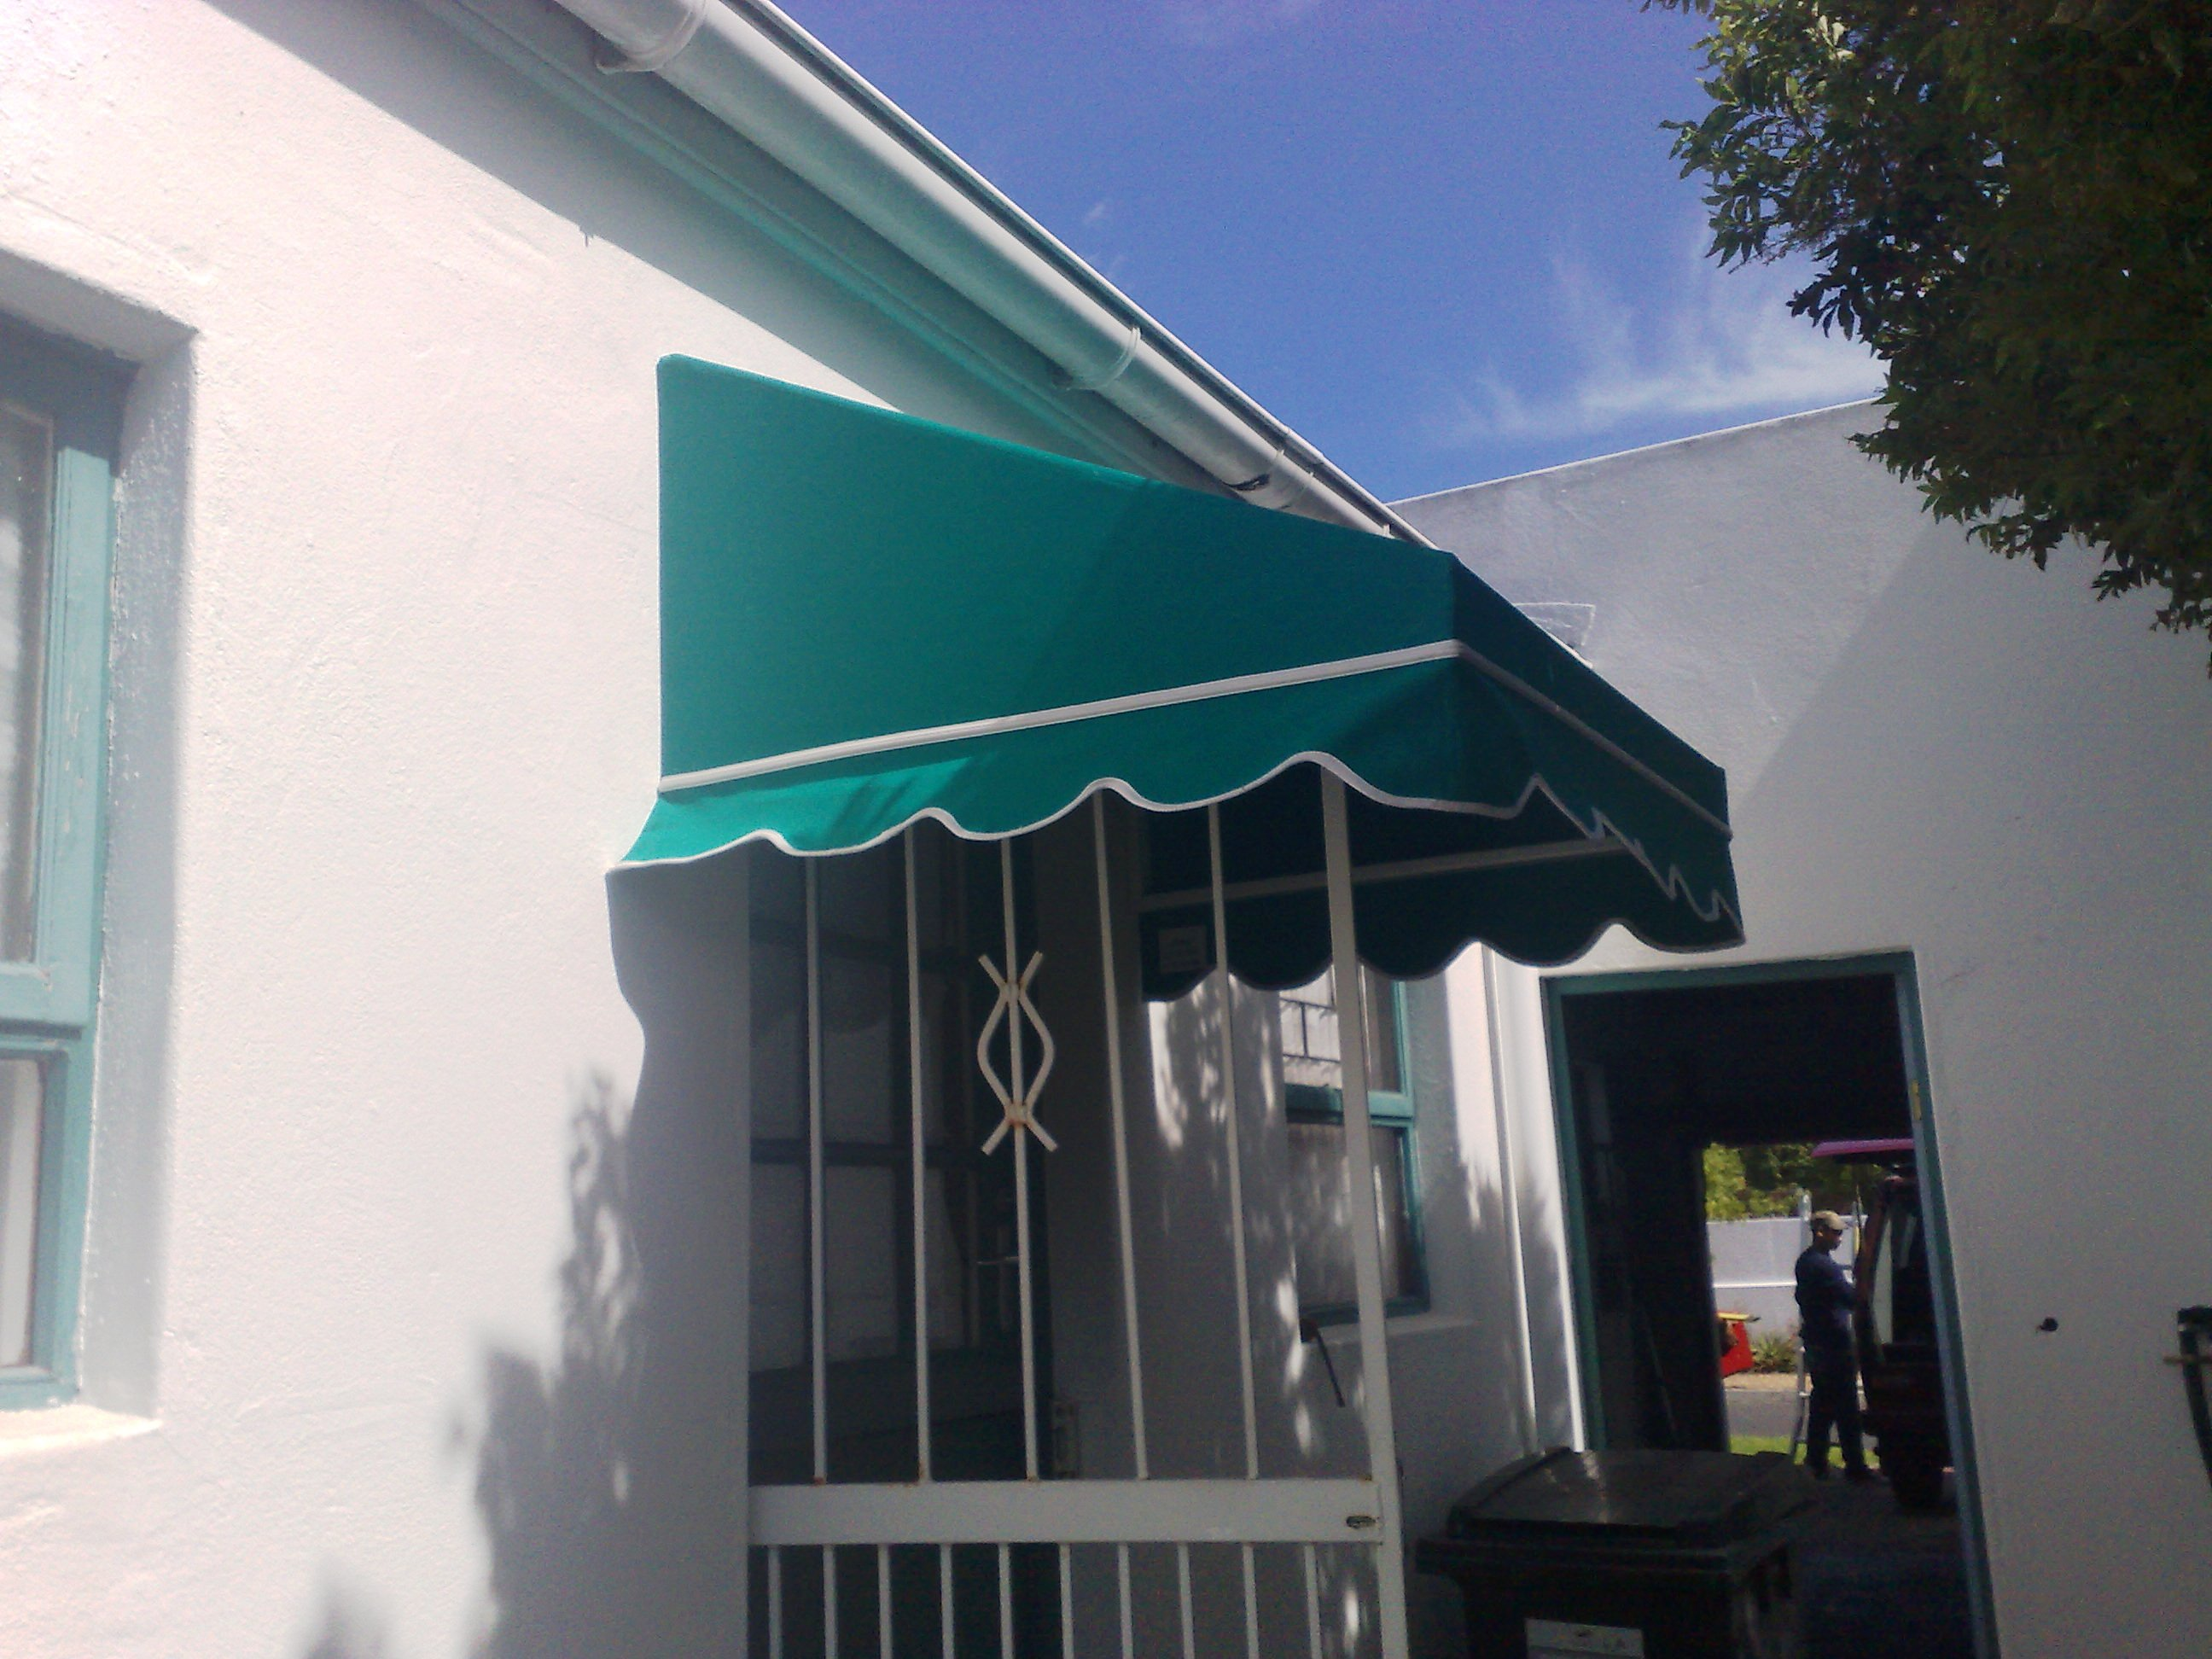 Fixed Canopy Awning